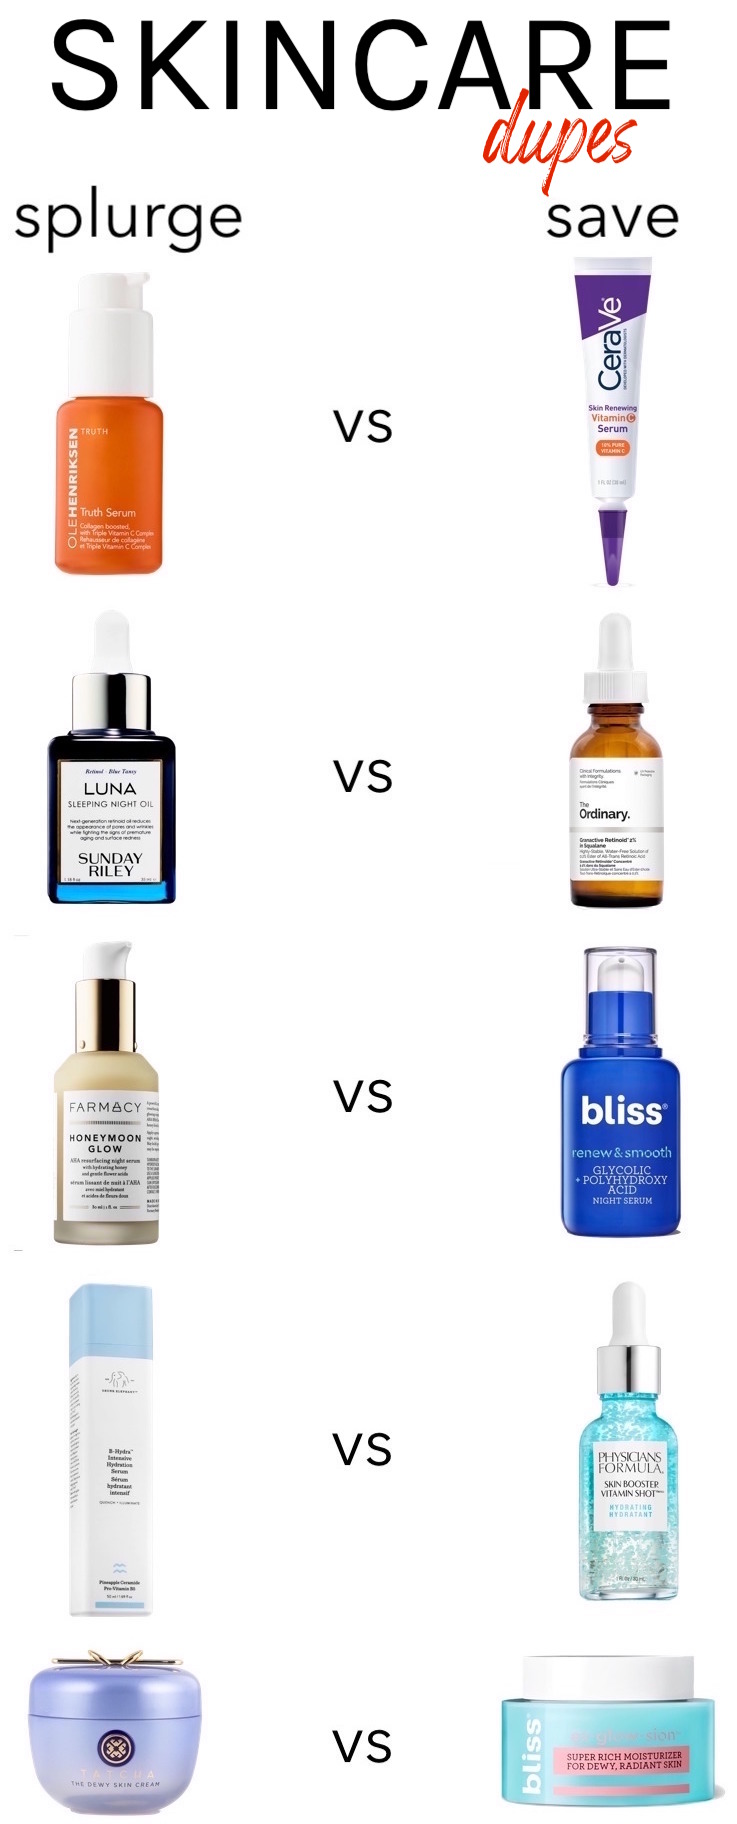 Skincare dupes for high-end products #drugstoredupes #skincaredupes #drugstoreskincare